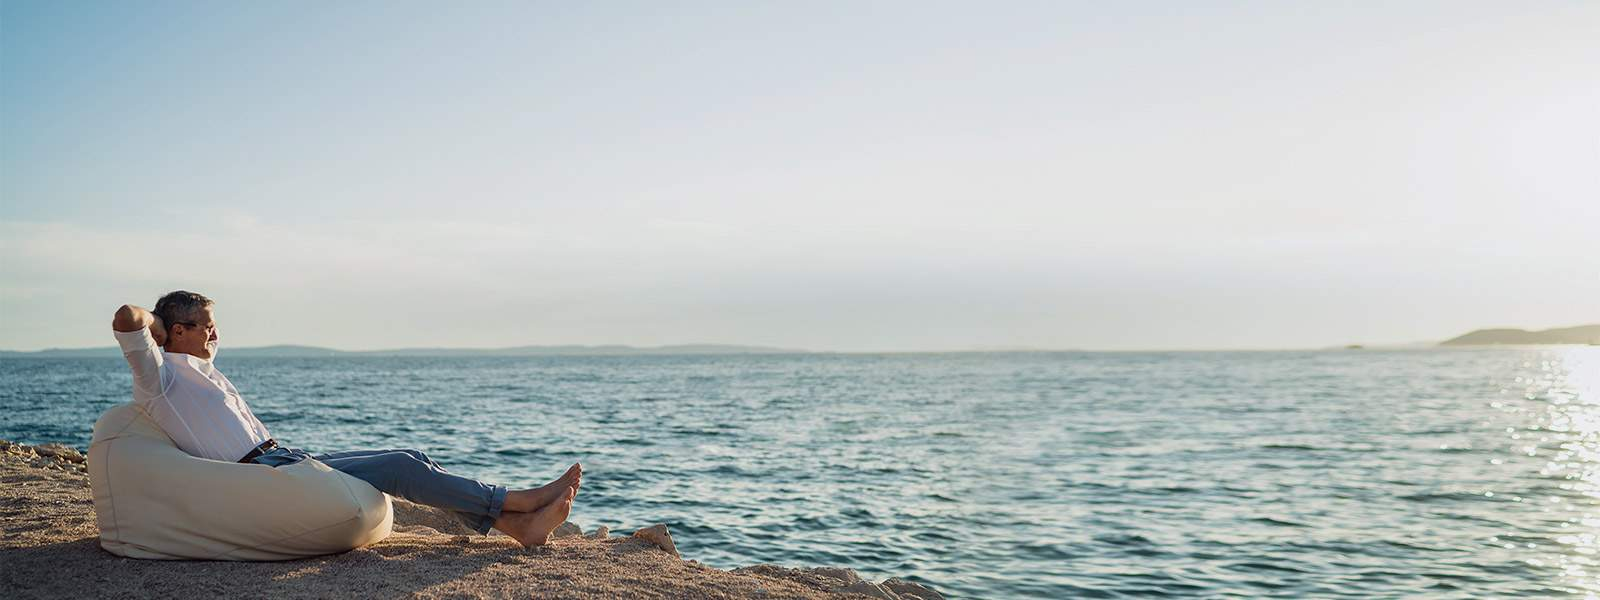 A yacht owner enjoying a relaxing moment with a panoramic view of the sea